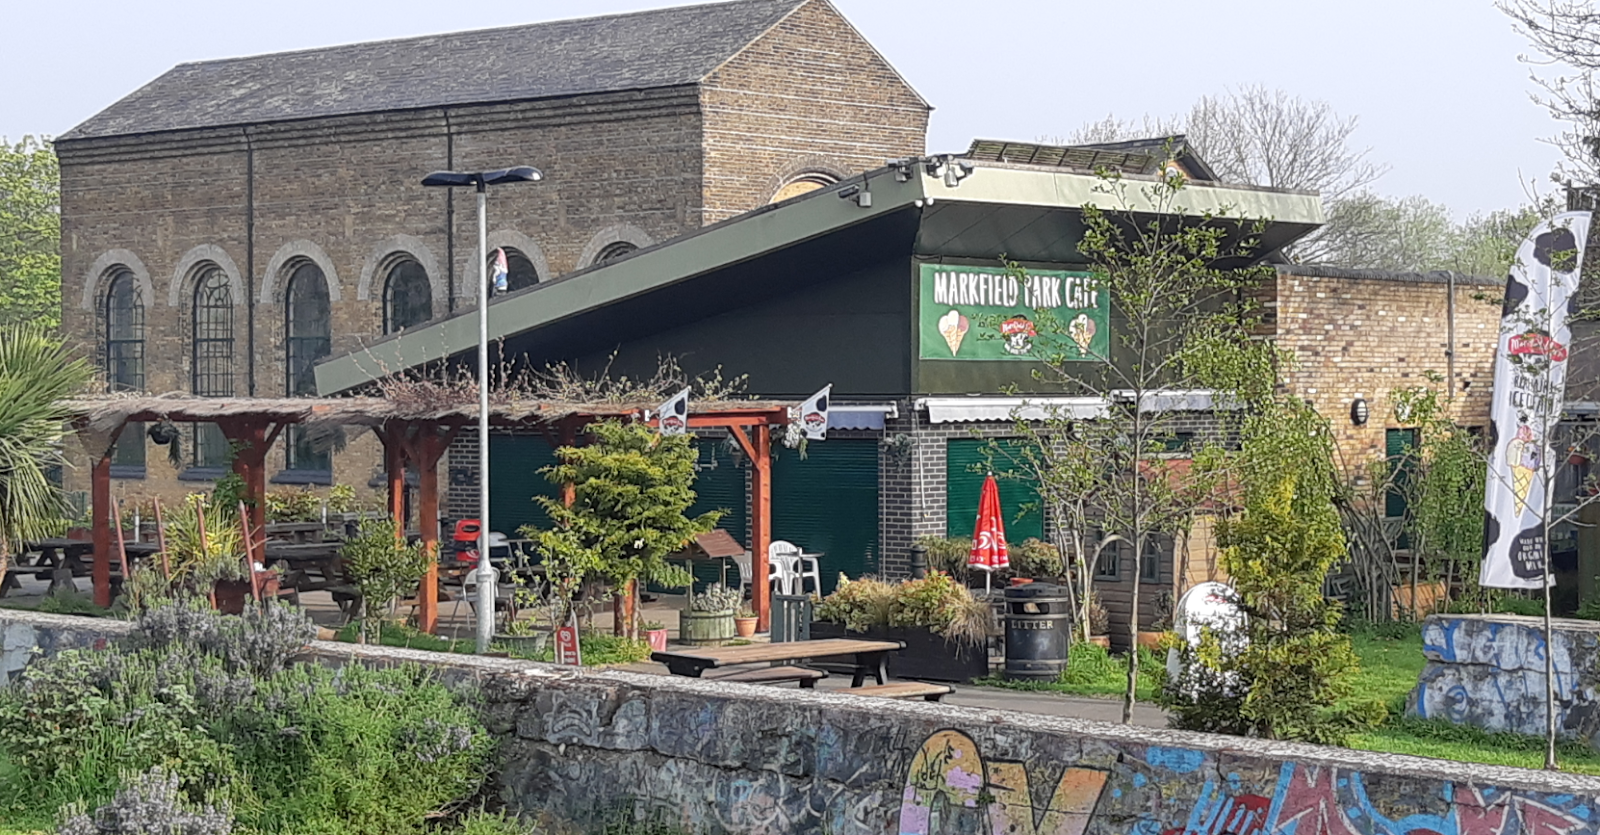 Parks in London - Markfield